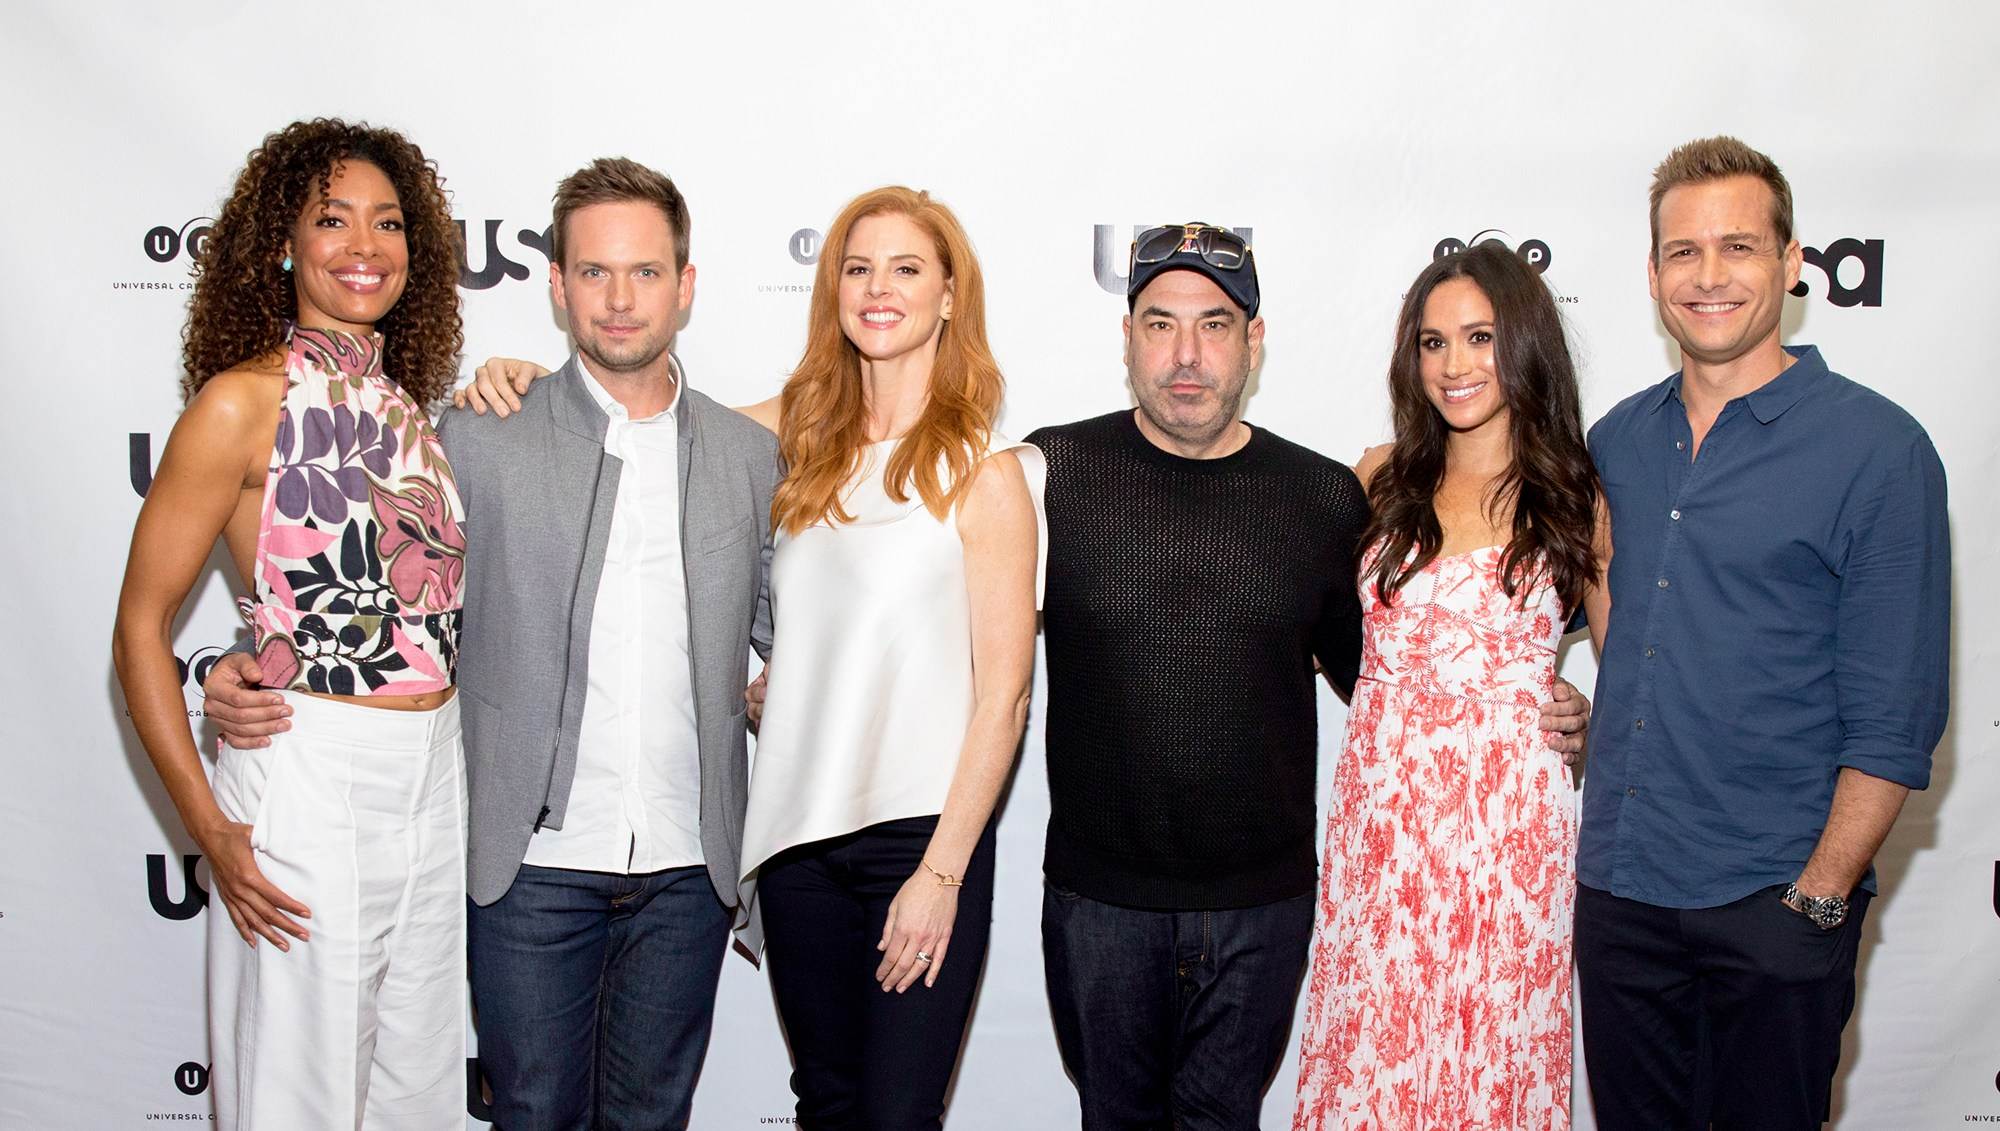 'Suits' stars Gina Torres, Patrick J. Adams, Sarah Rafferty, Rick Hoffman, Meghan Markle and Gabriel Macht attend 2017 Script Reading Presented by USA Network.